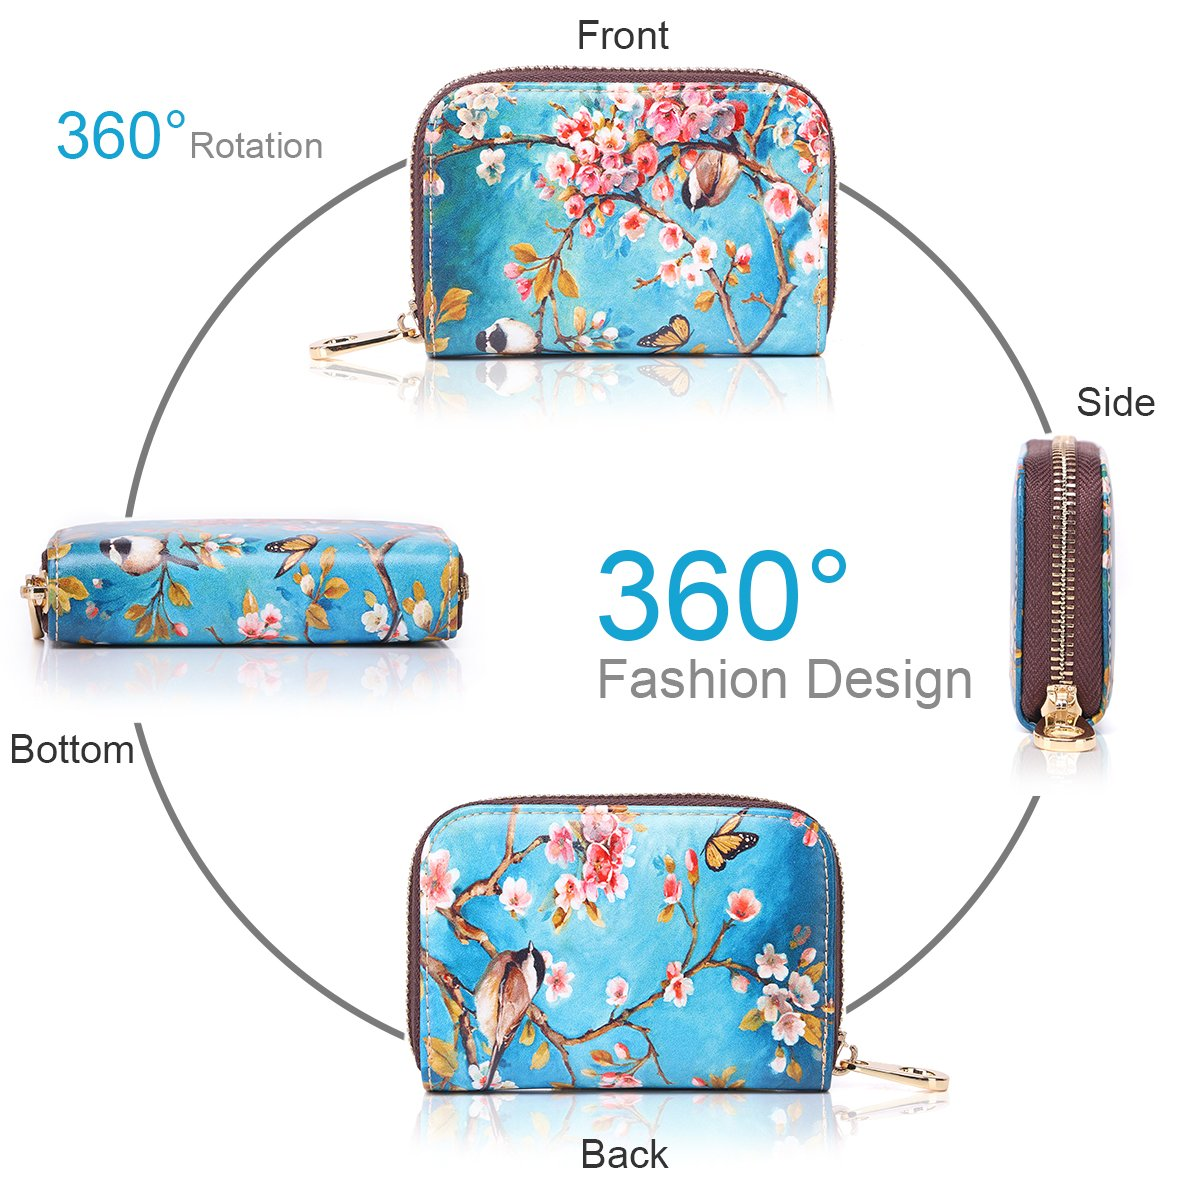 APHISON RFID Credit Card Holder Wallets for Women Leather Cartoon Patterns Zipper Card Case for Ladies Girls/Gift Box 010 by APHISON (Image #4)